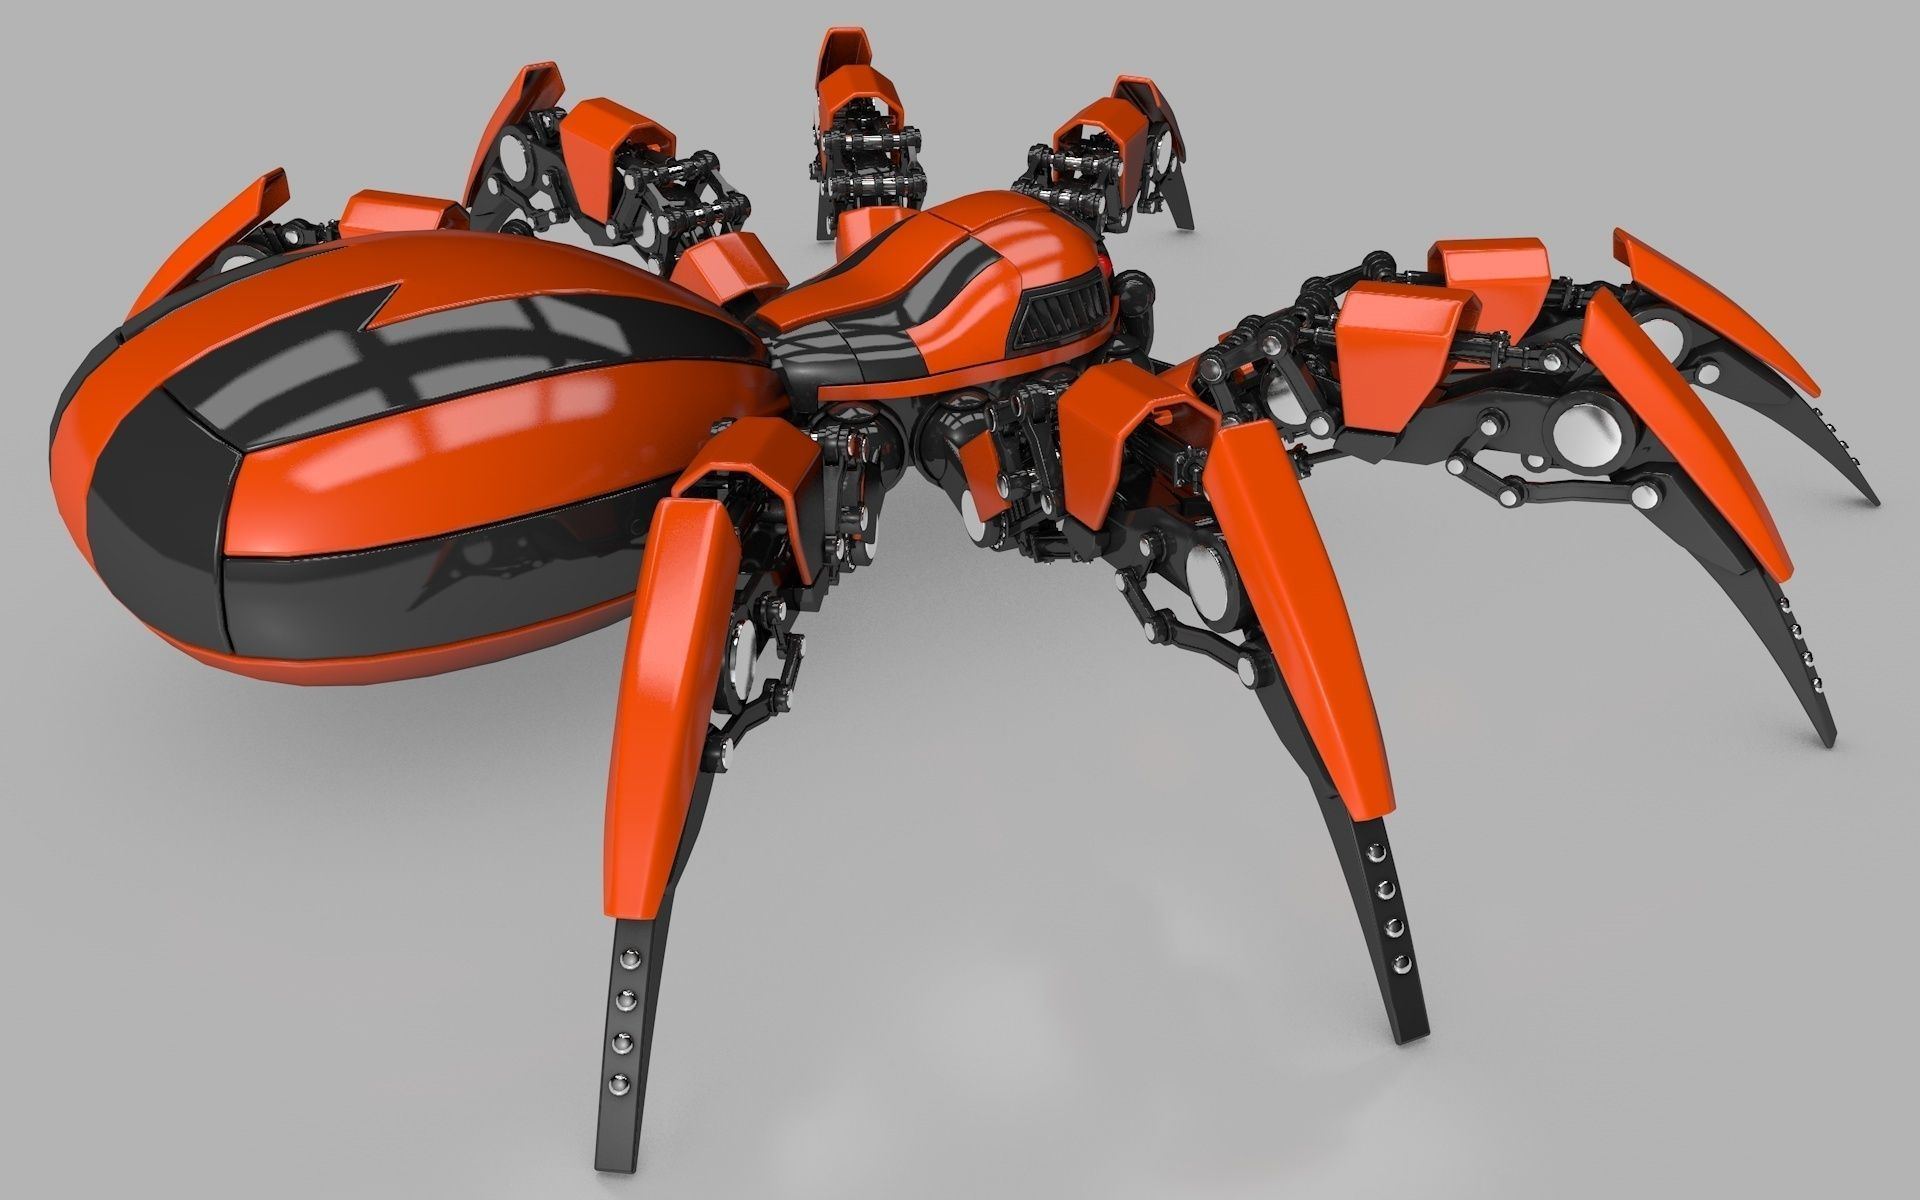 mechanical sex chair best outdoor lounge spider robot 3d model rigged obj 3ds fbx c4d